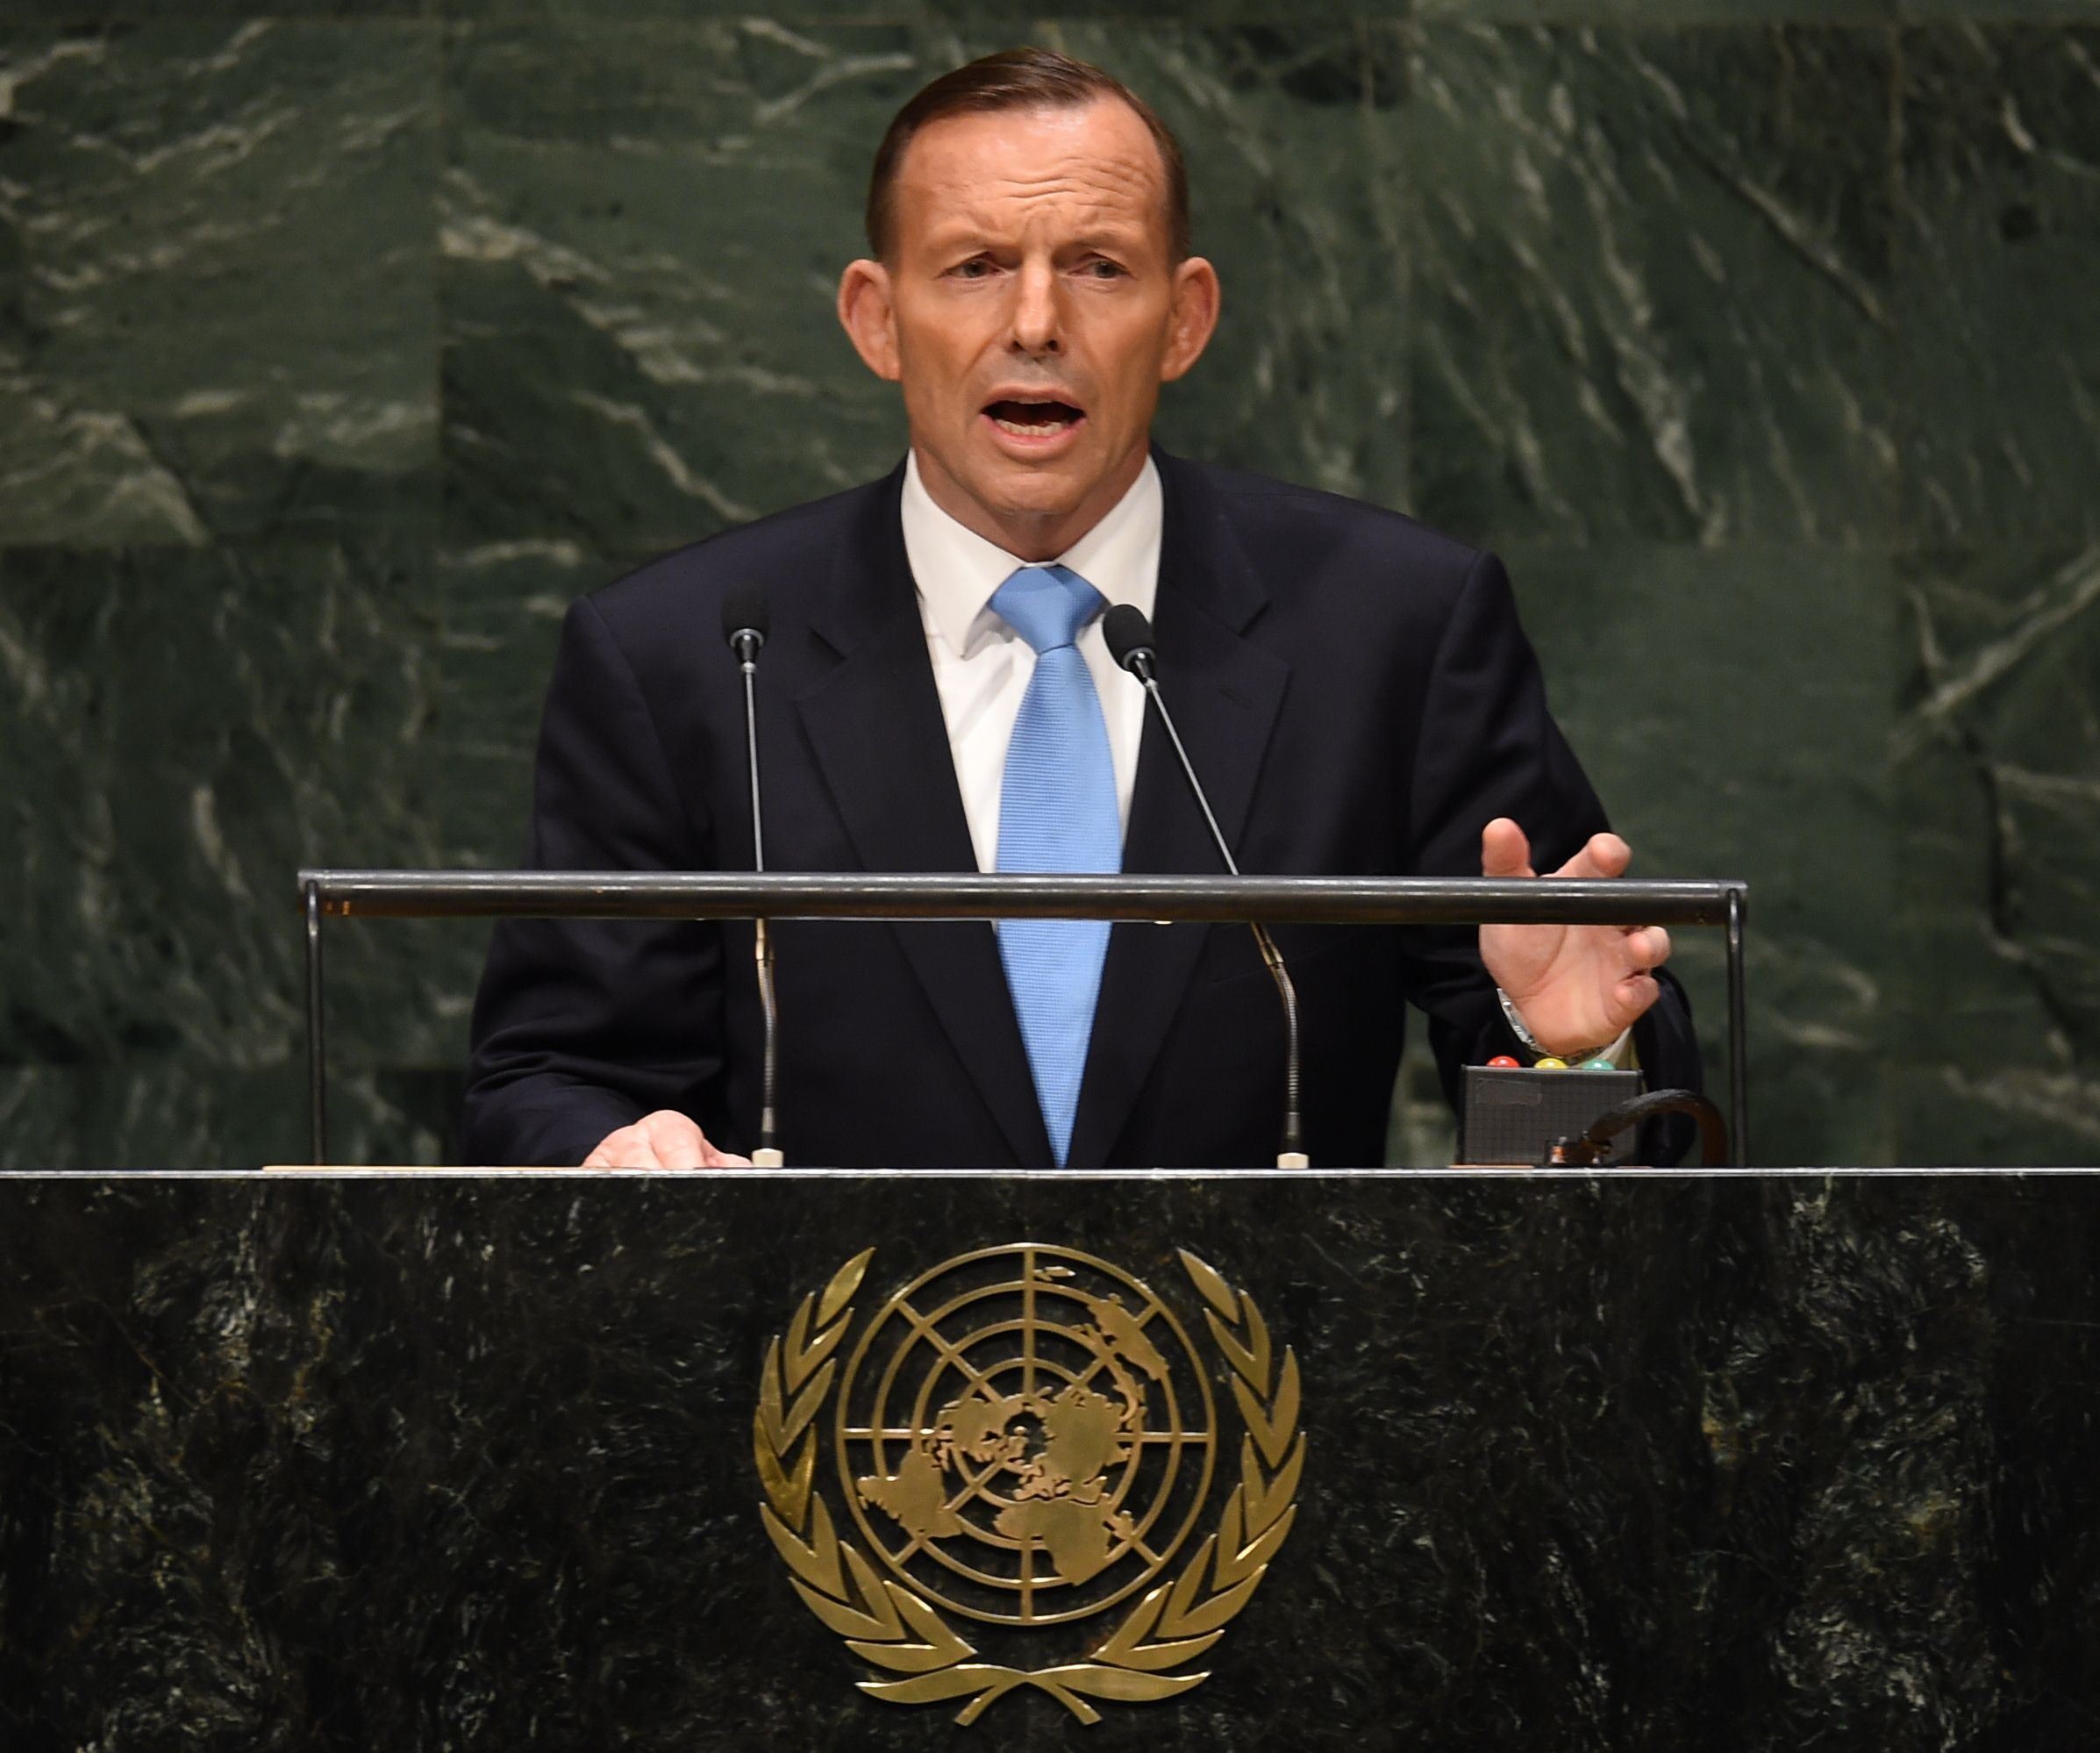 Civil Liberties: Mr Abbott, freedom is security